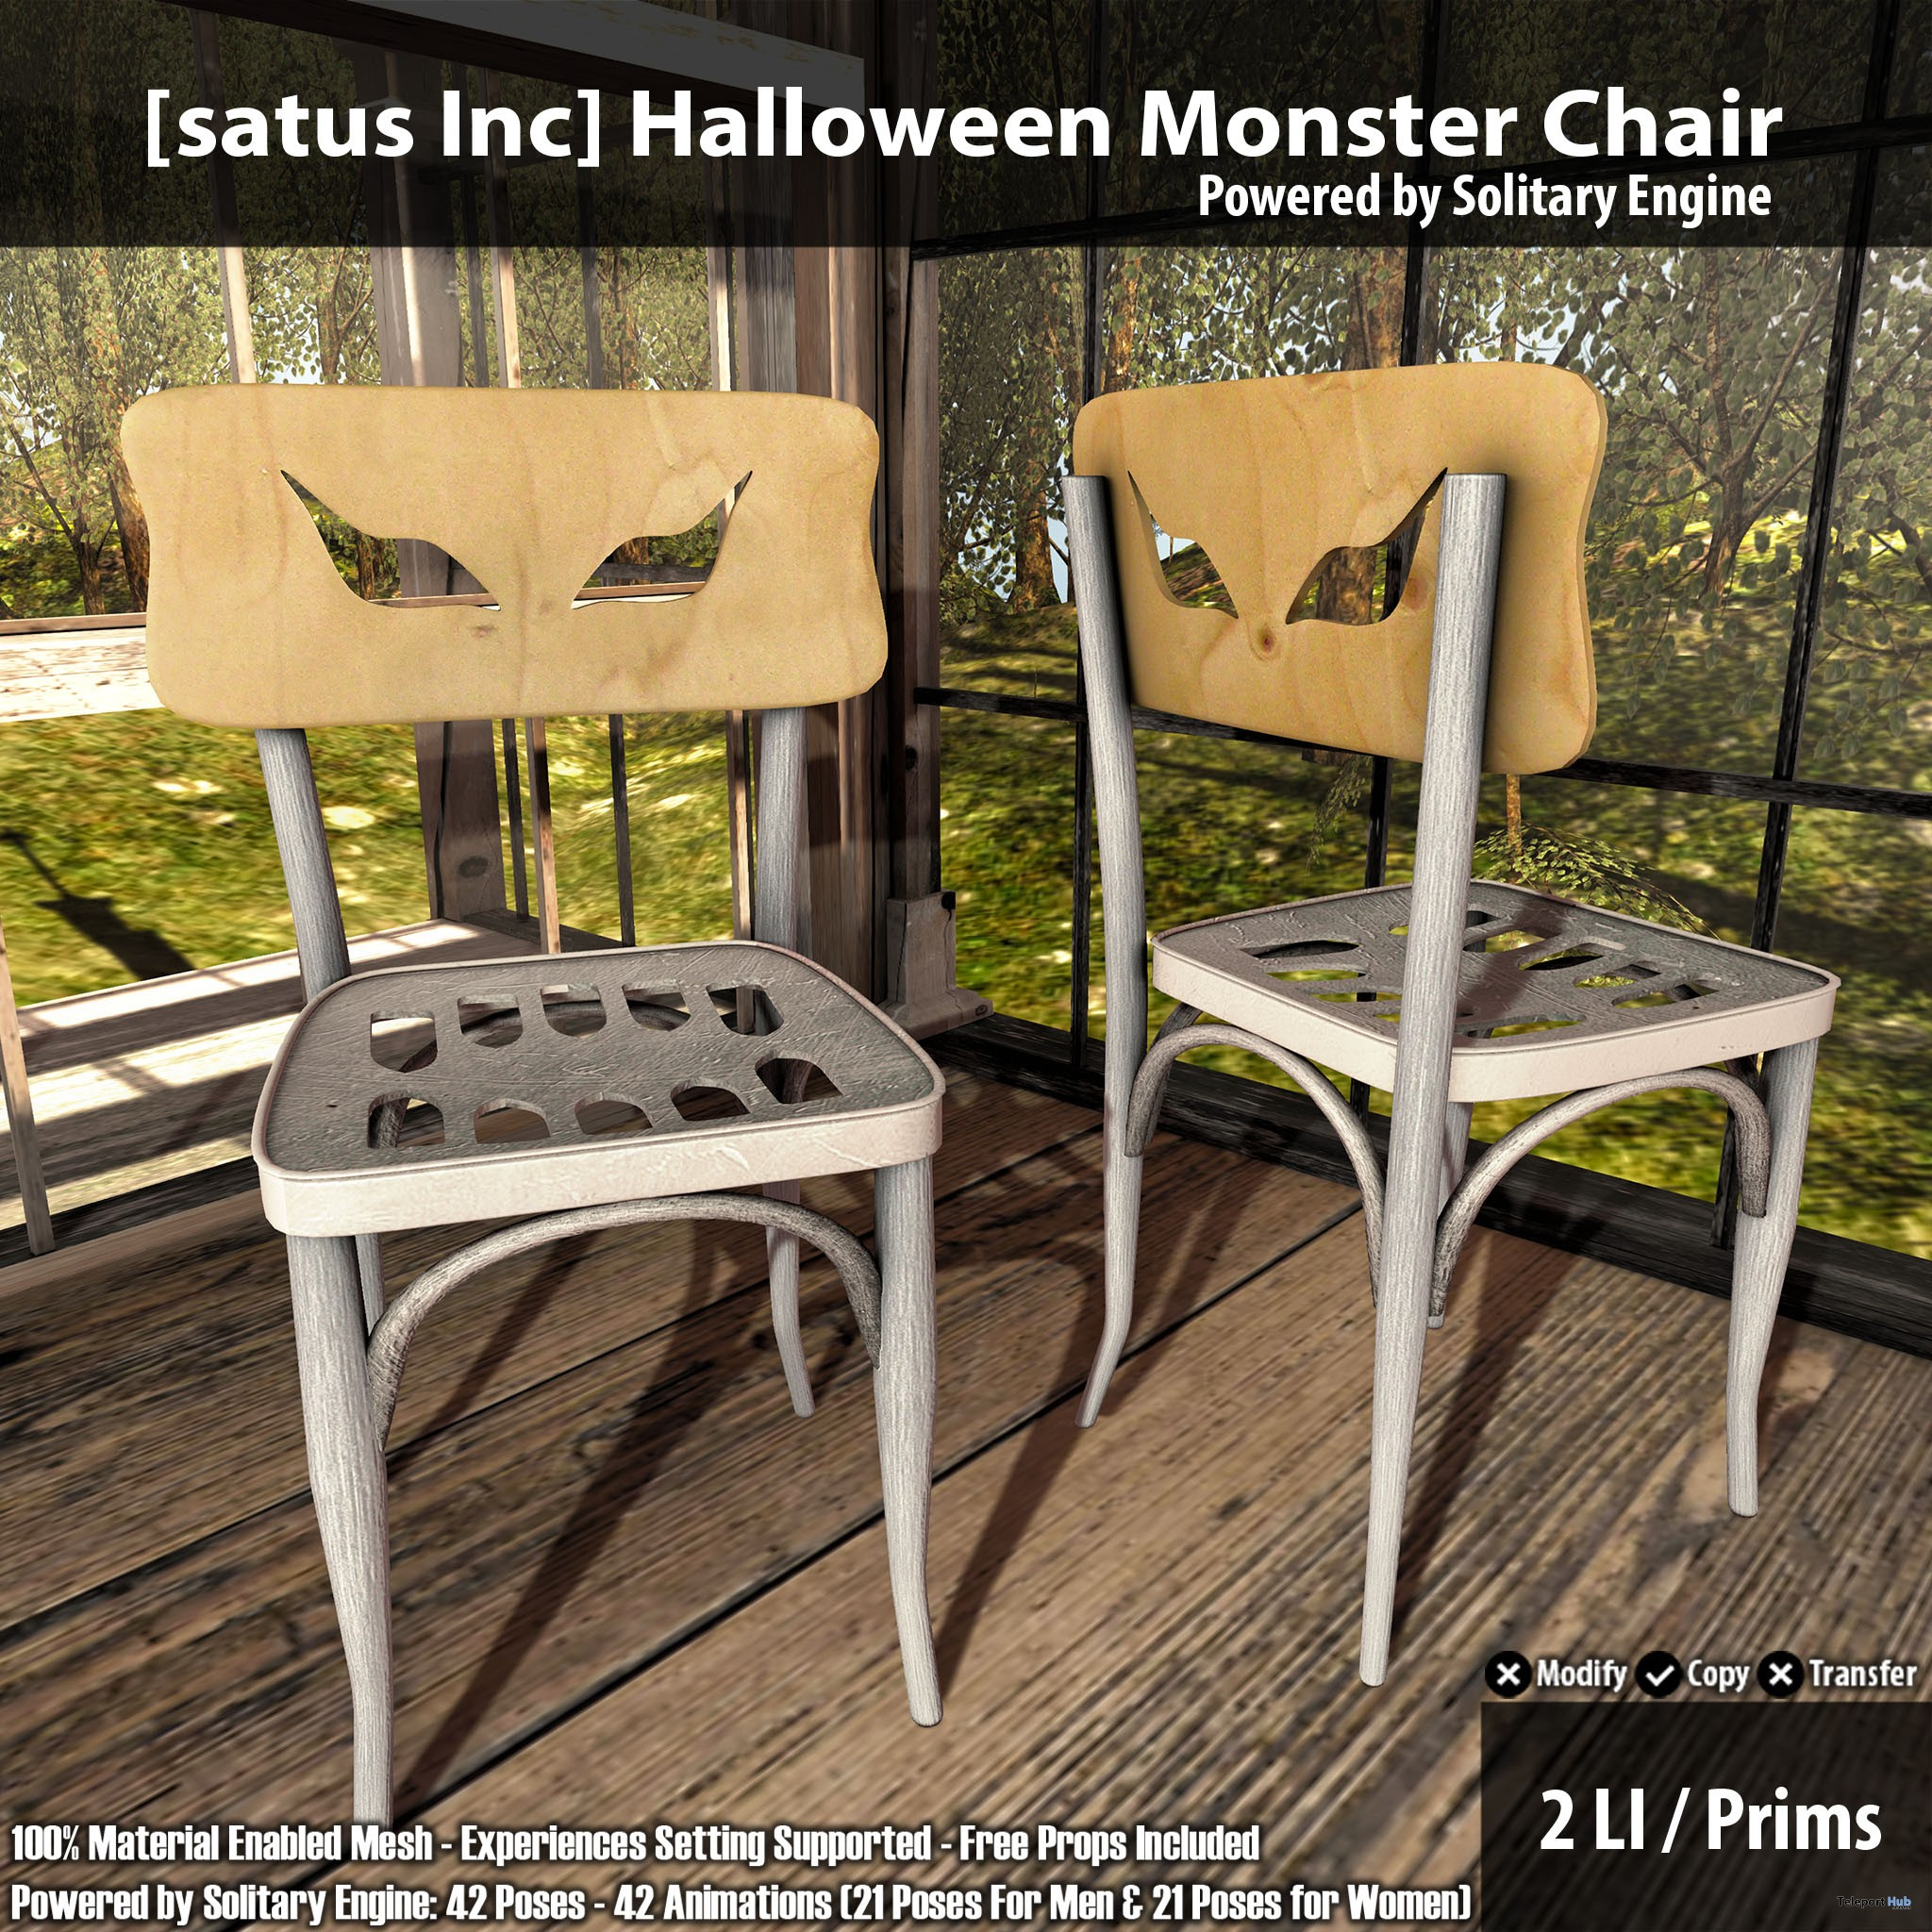 New Release: Halloween Monster Chair by [satus Inc] - Teleport Hub - teleporthub.com